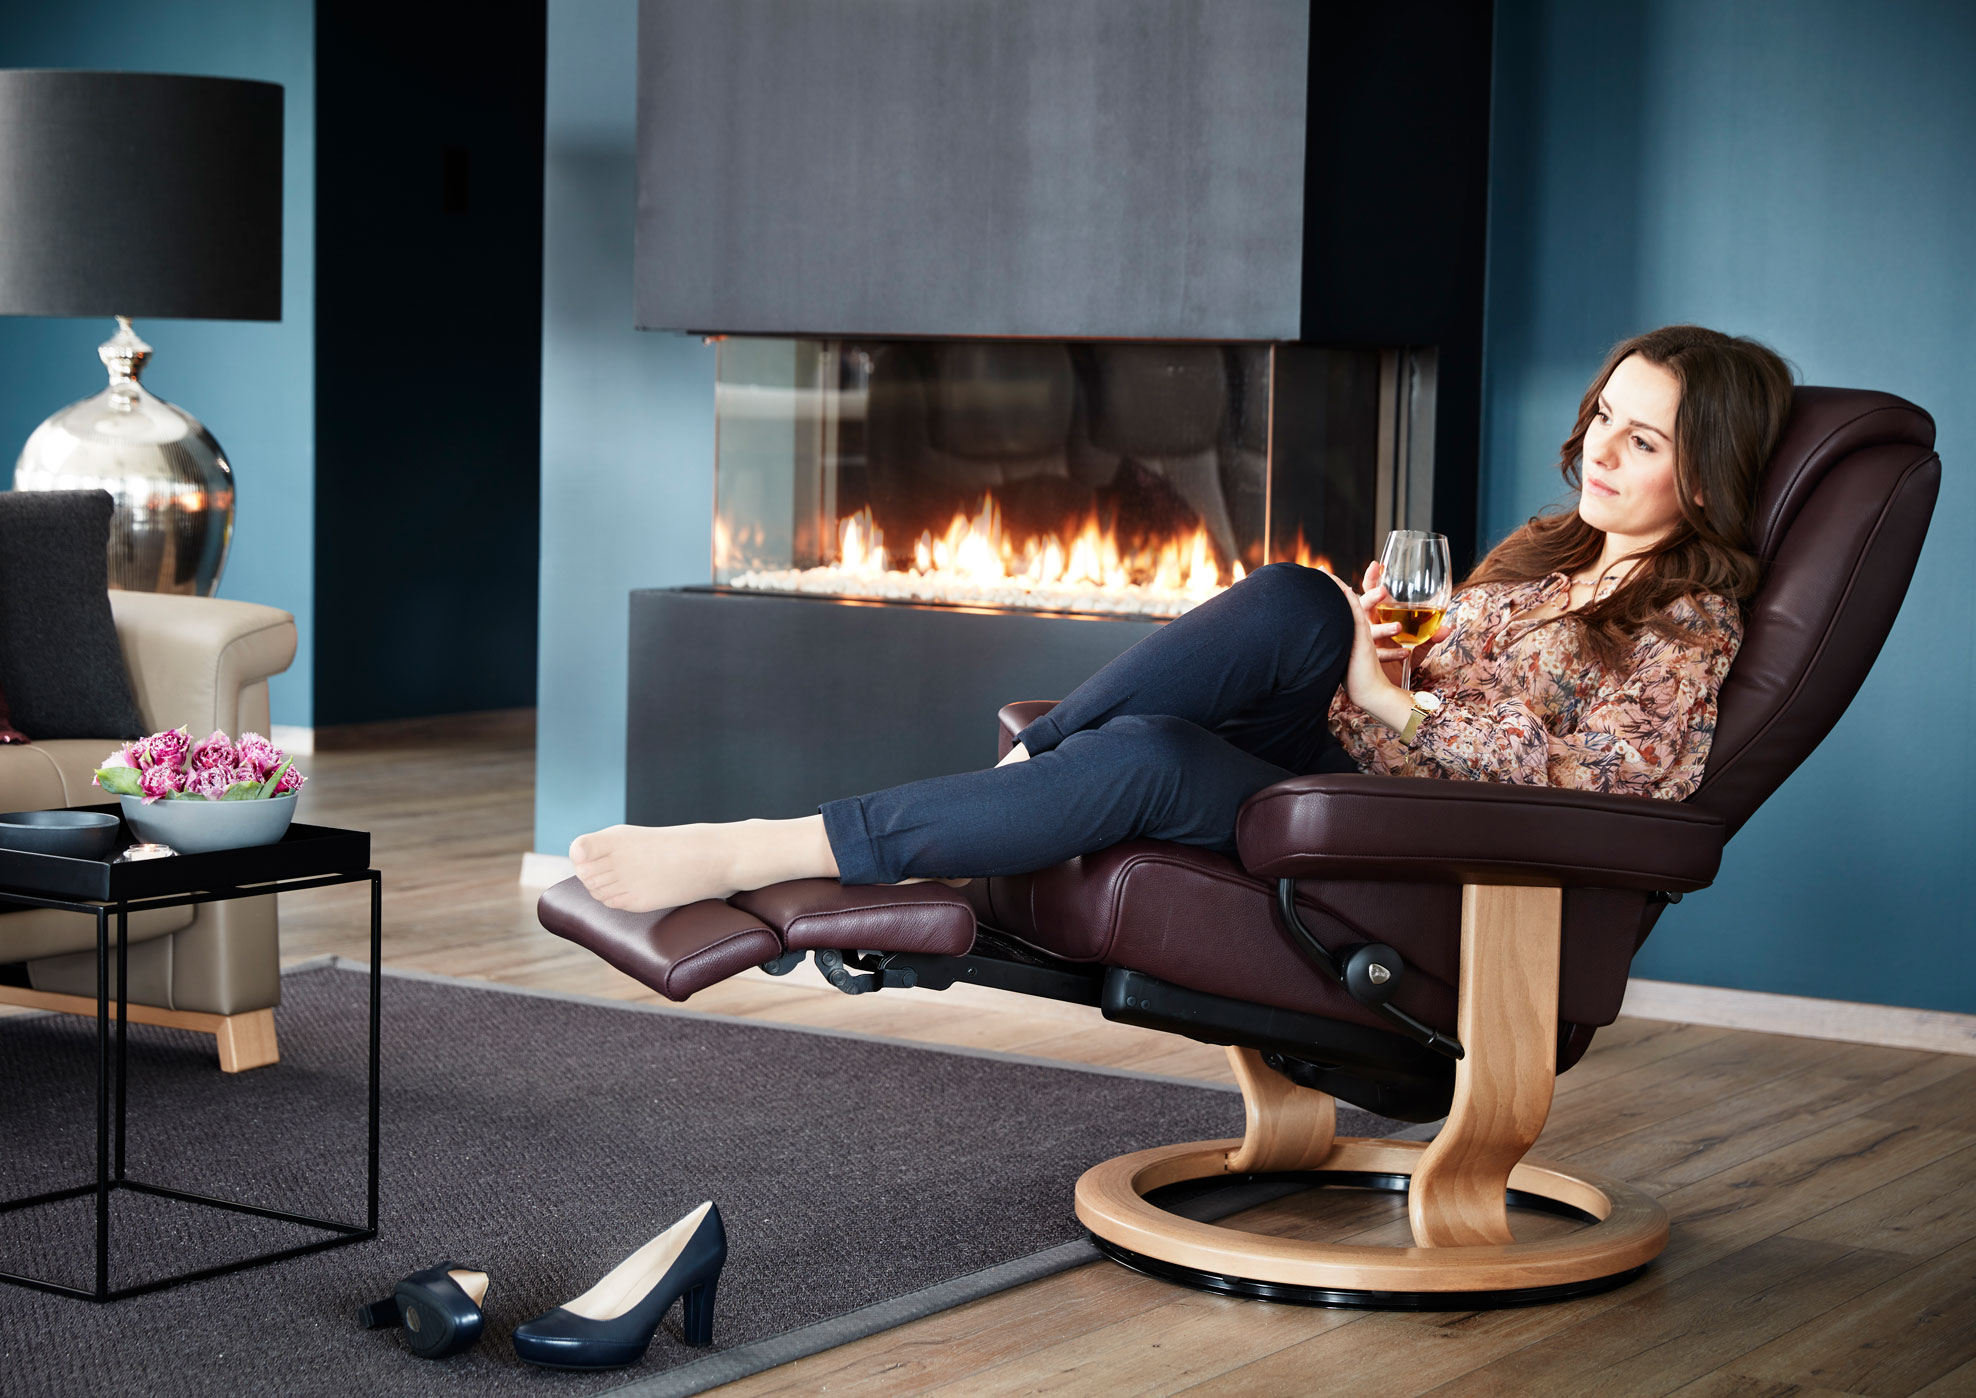 Legcomfort The Integrated Footrest By Stressless